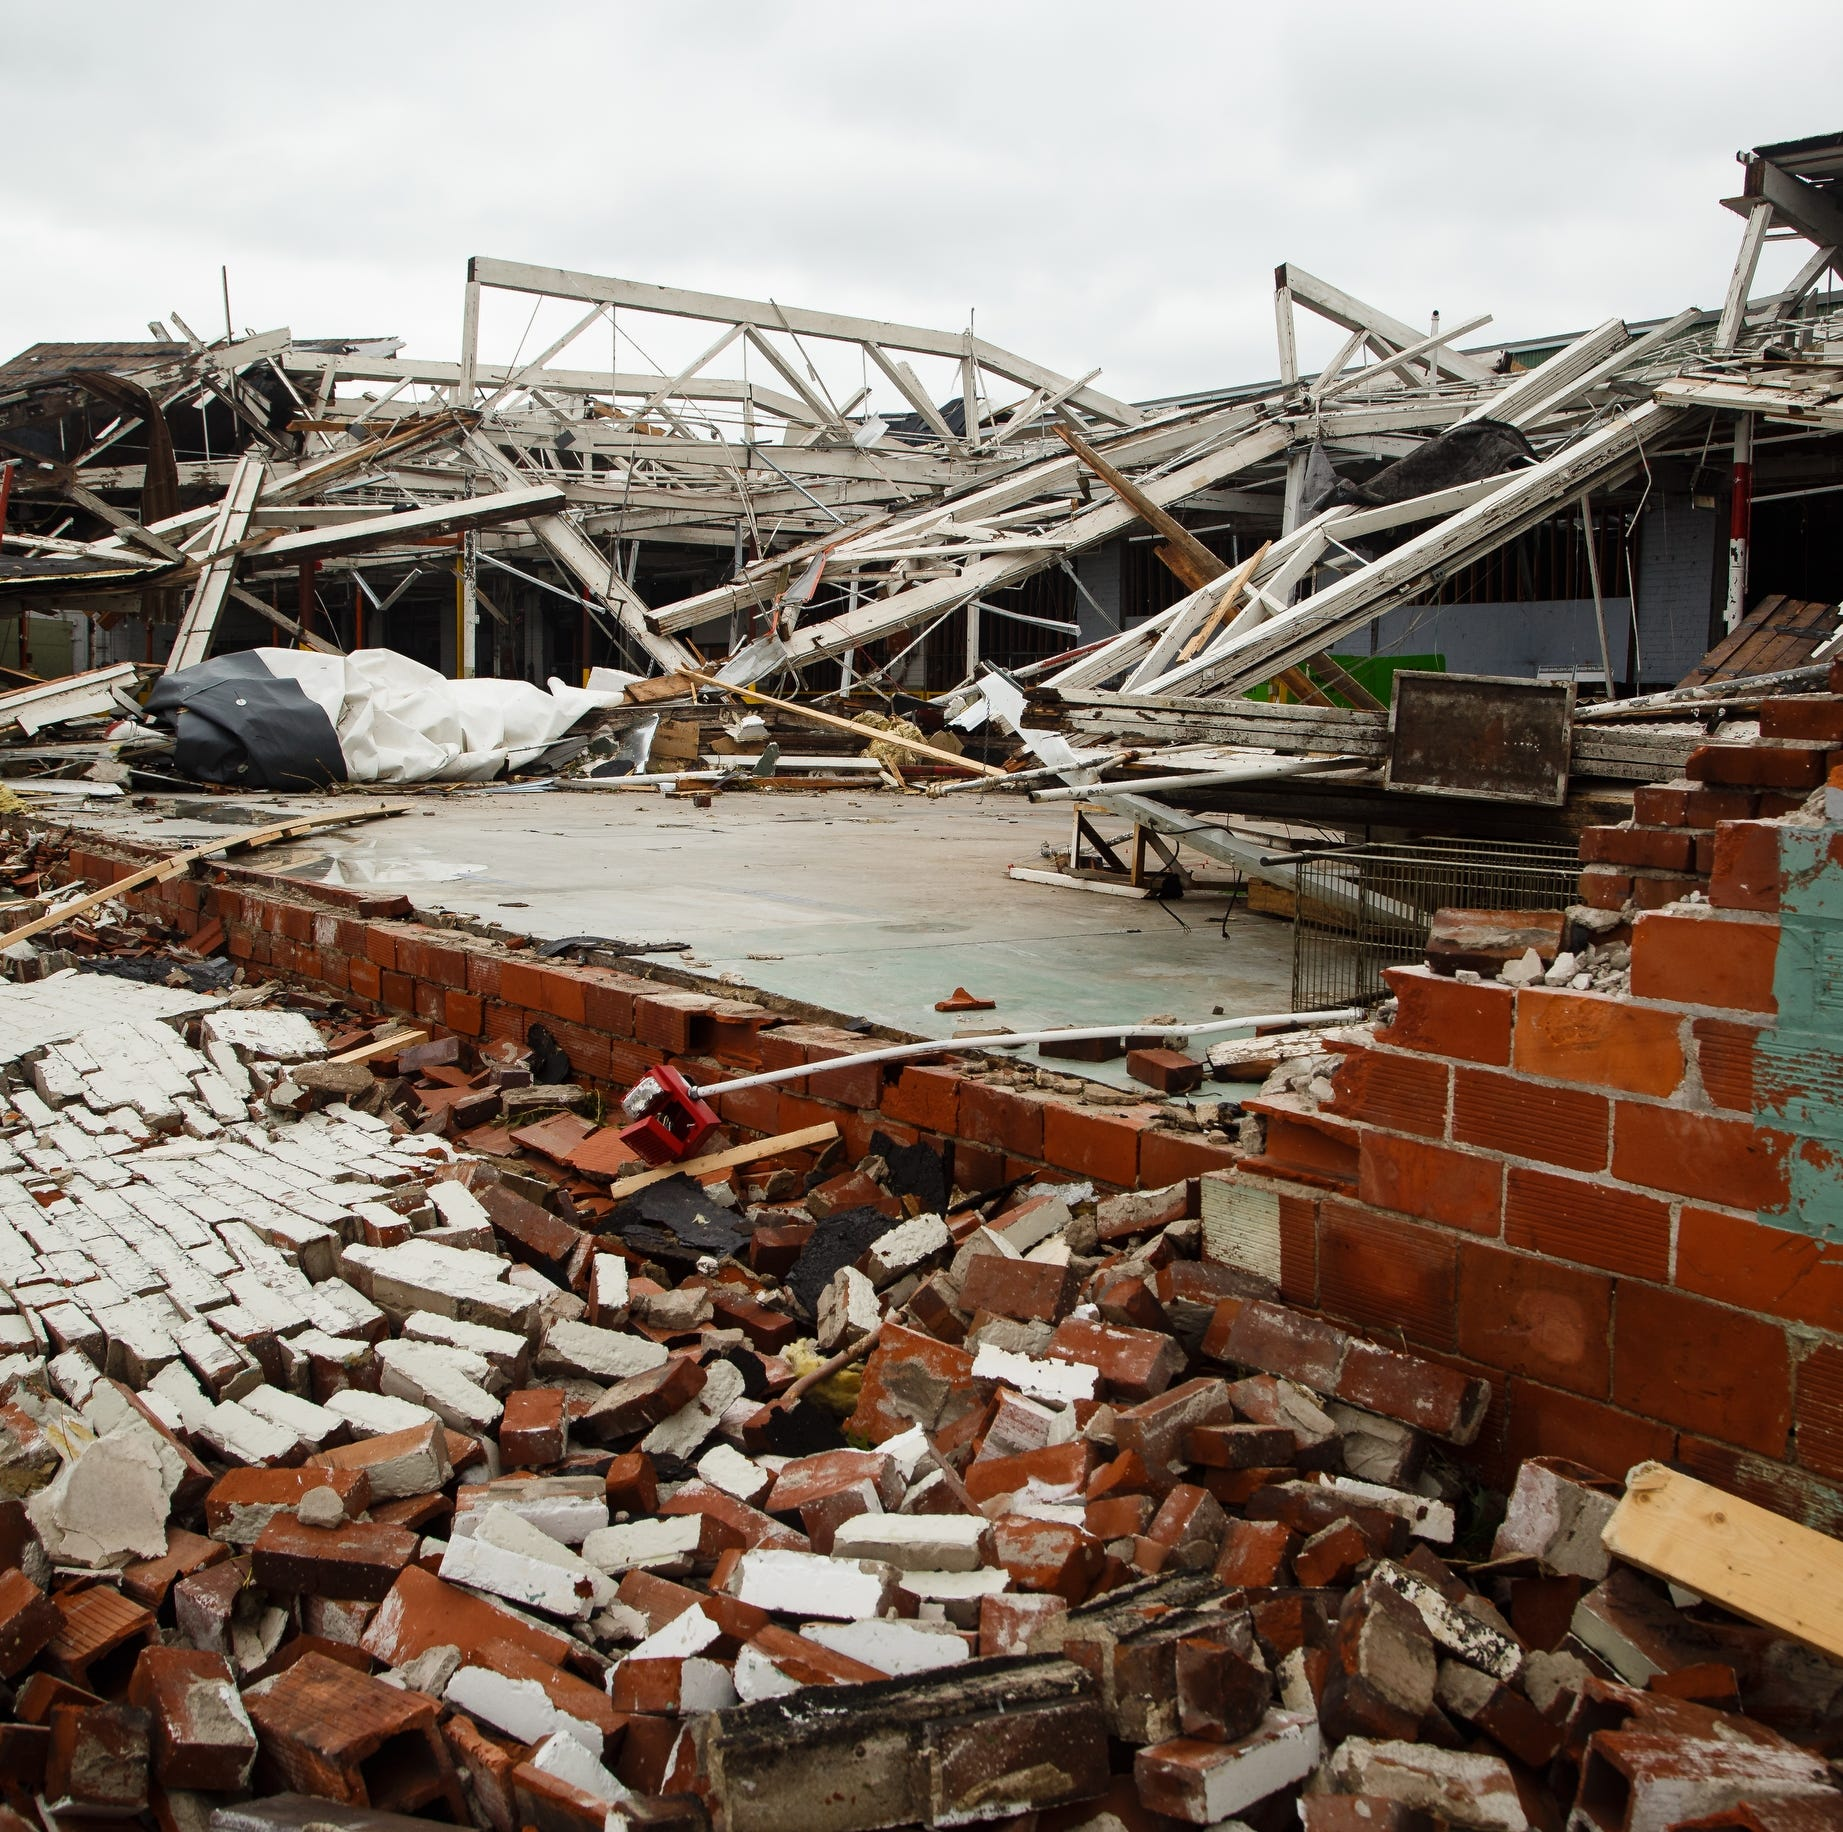 The Marshalltown tornado devastated the Lennox plant. Will the company remain?